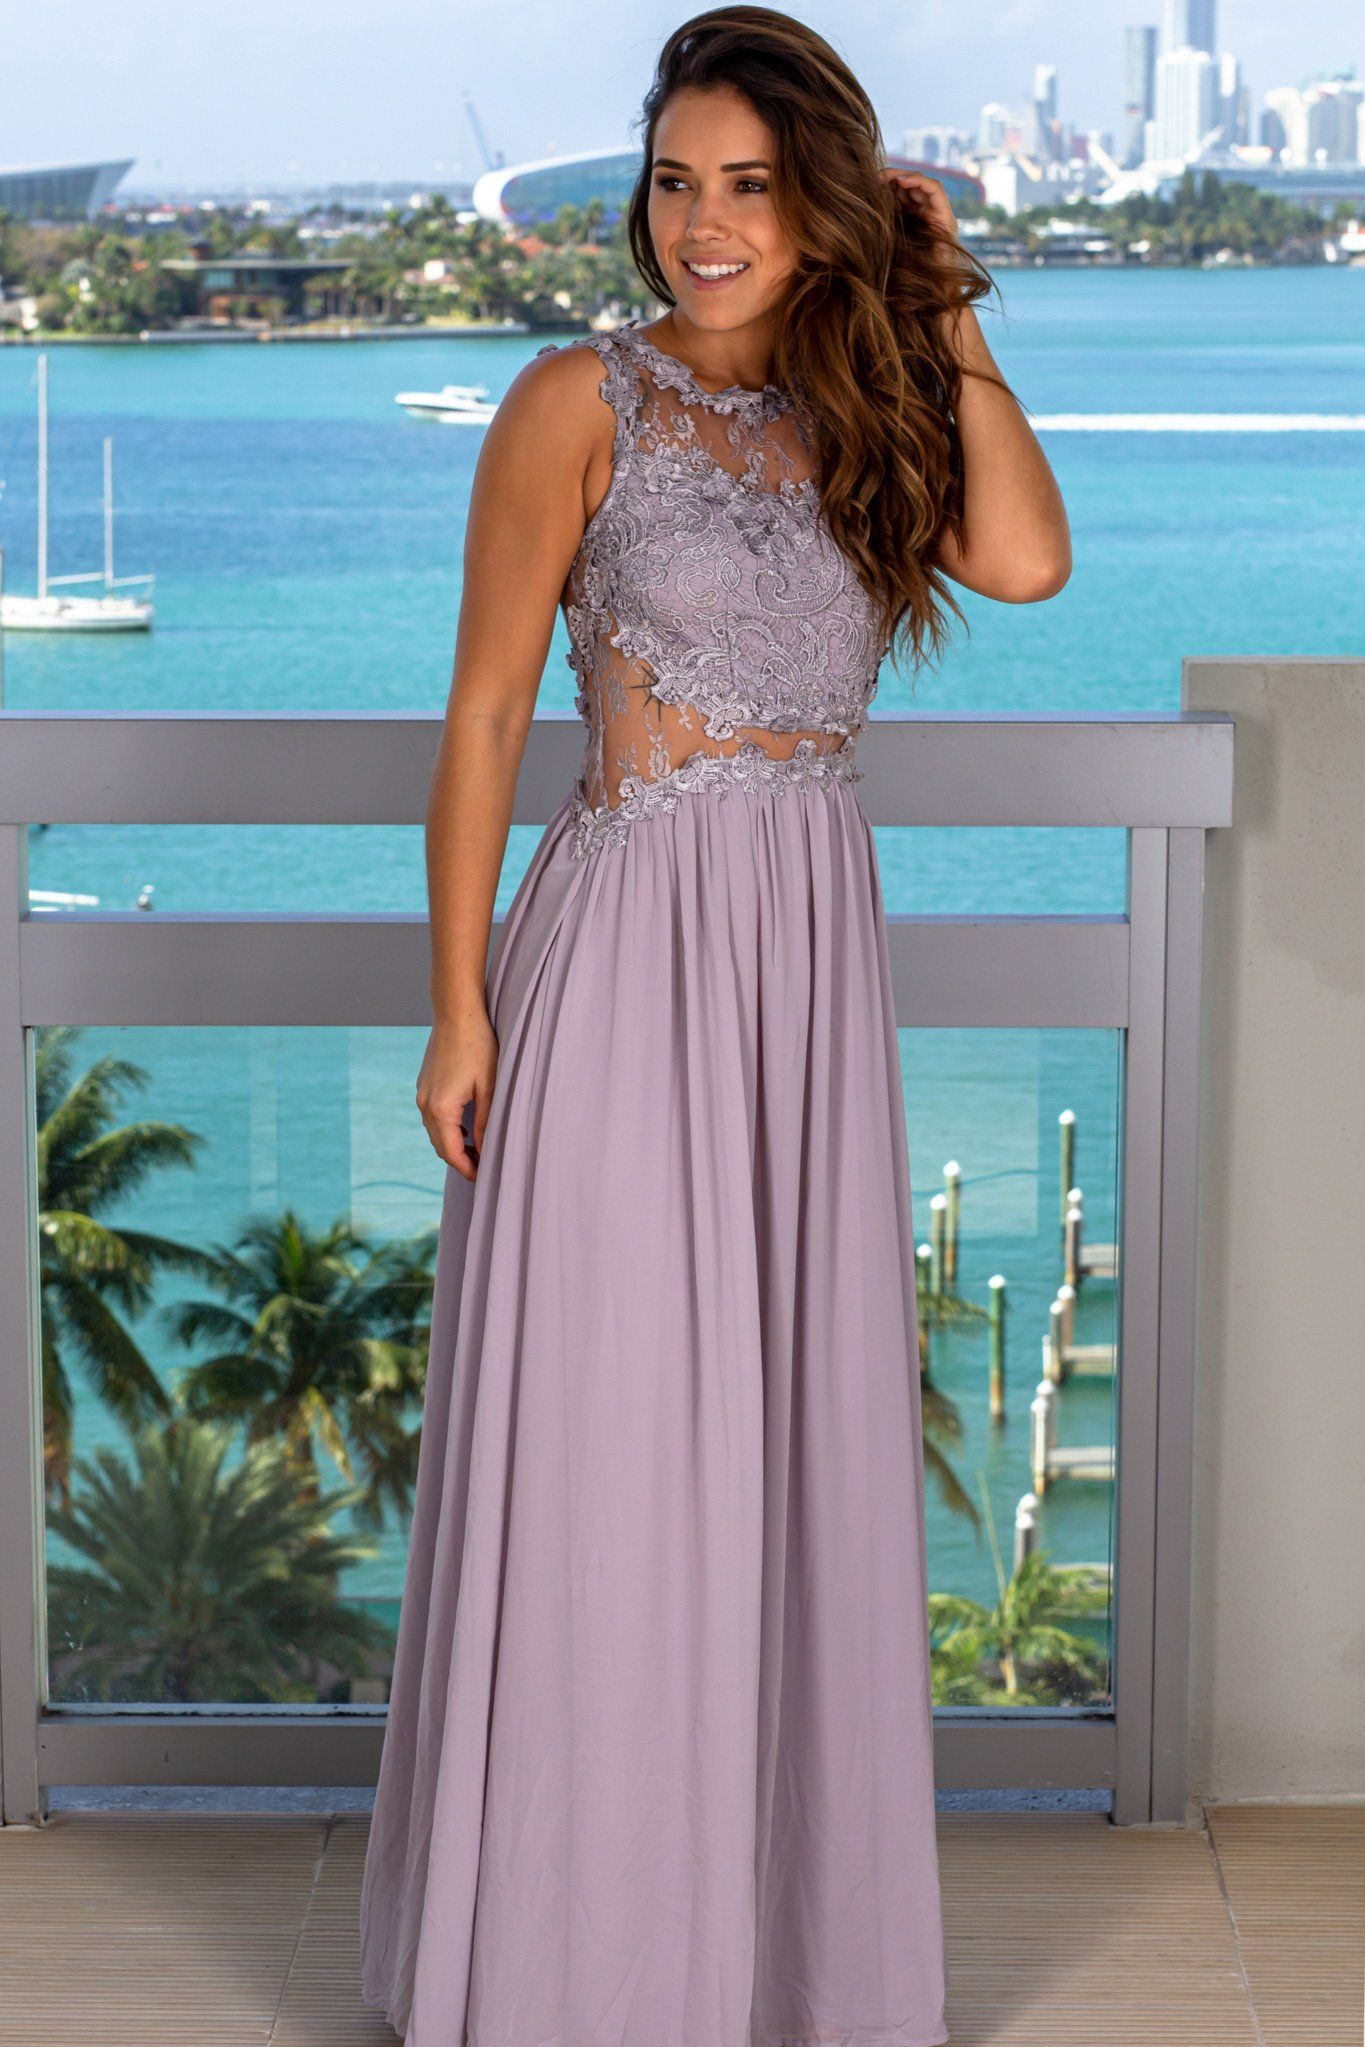 30++ Lace top maxi dress information